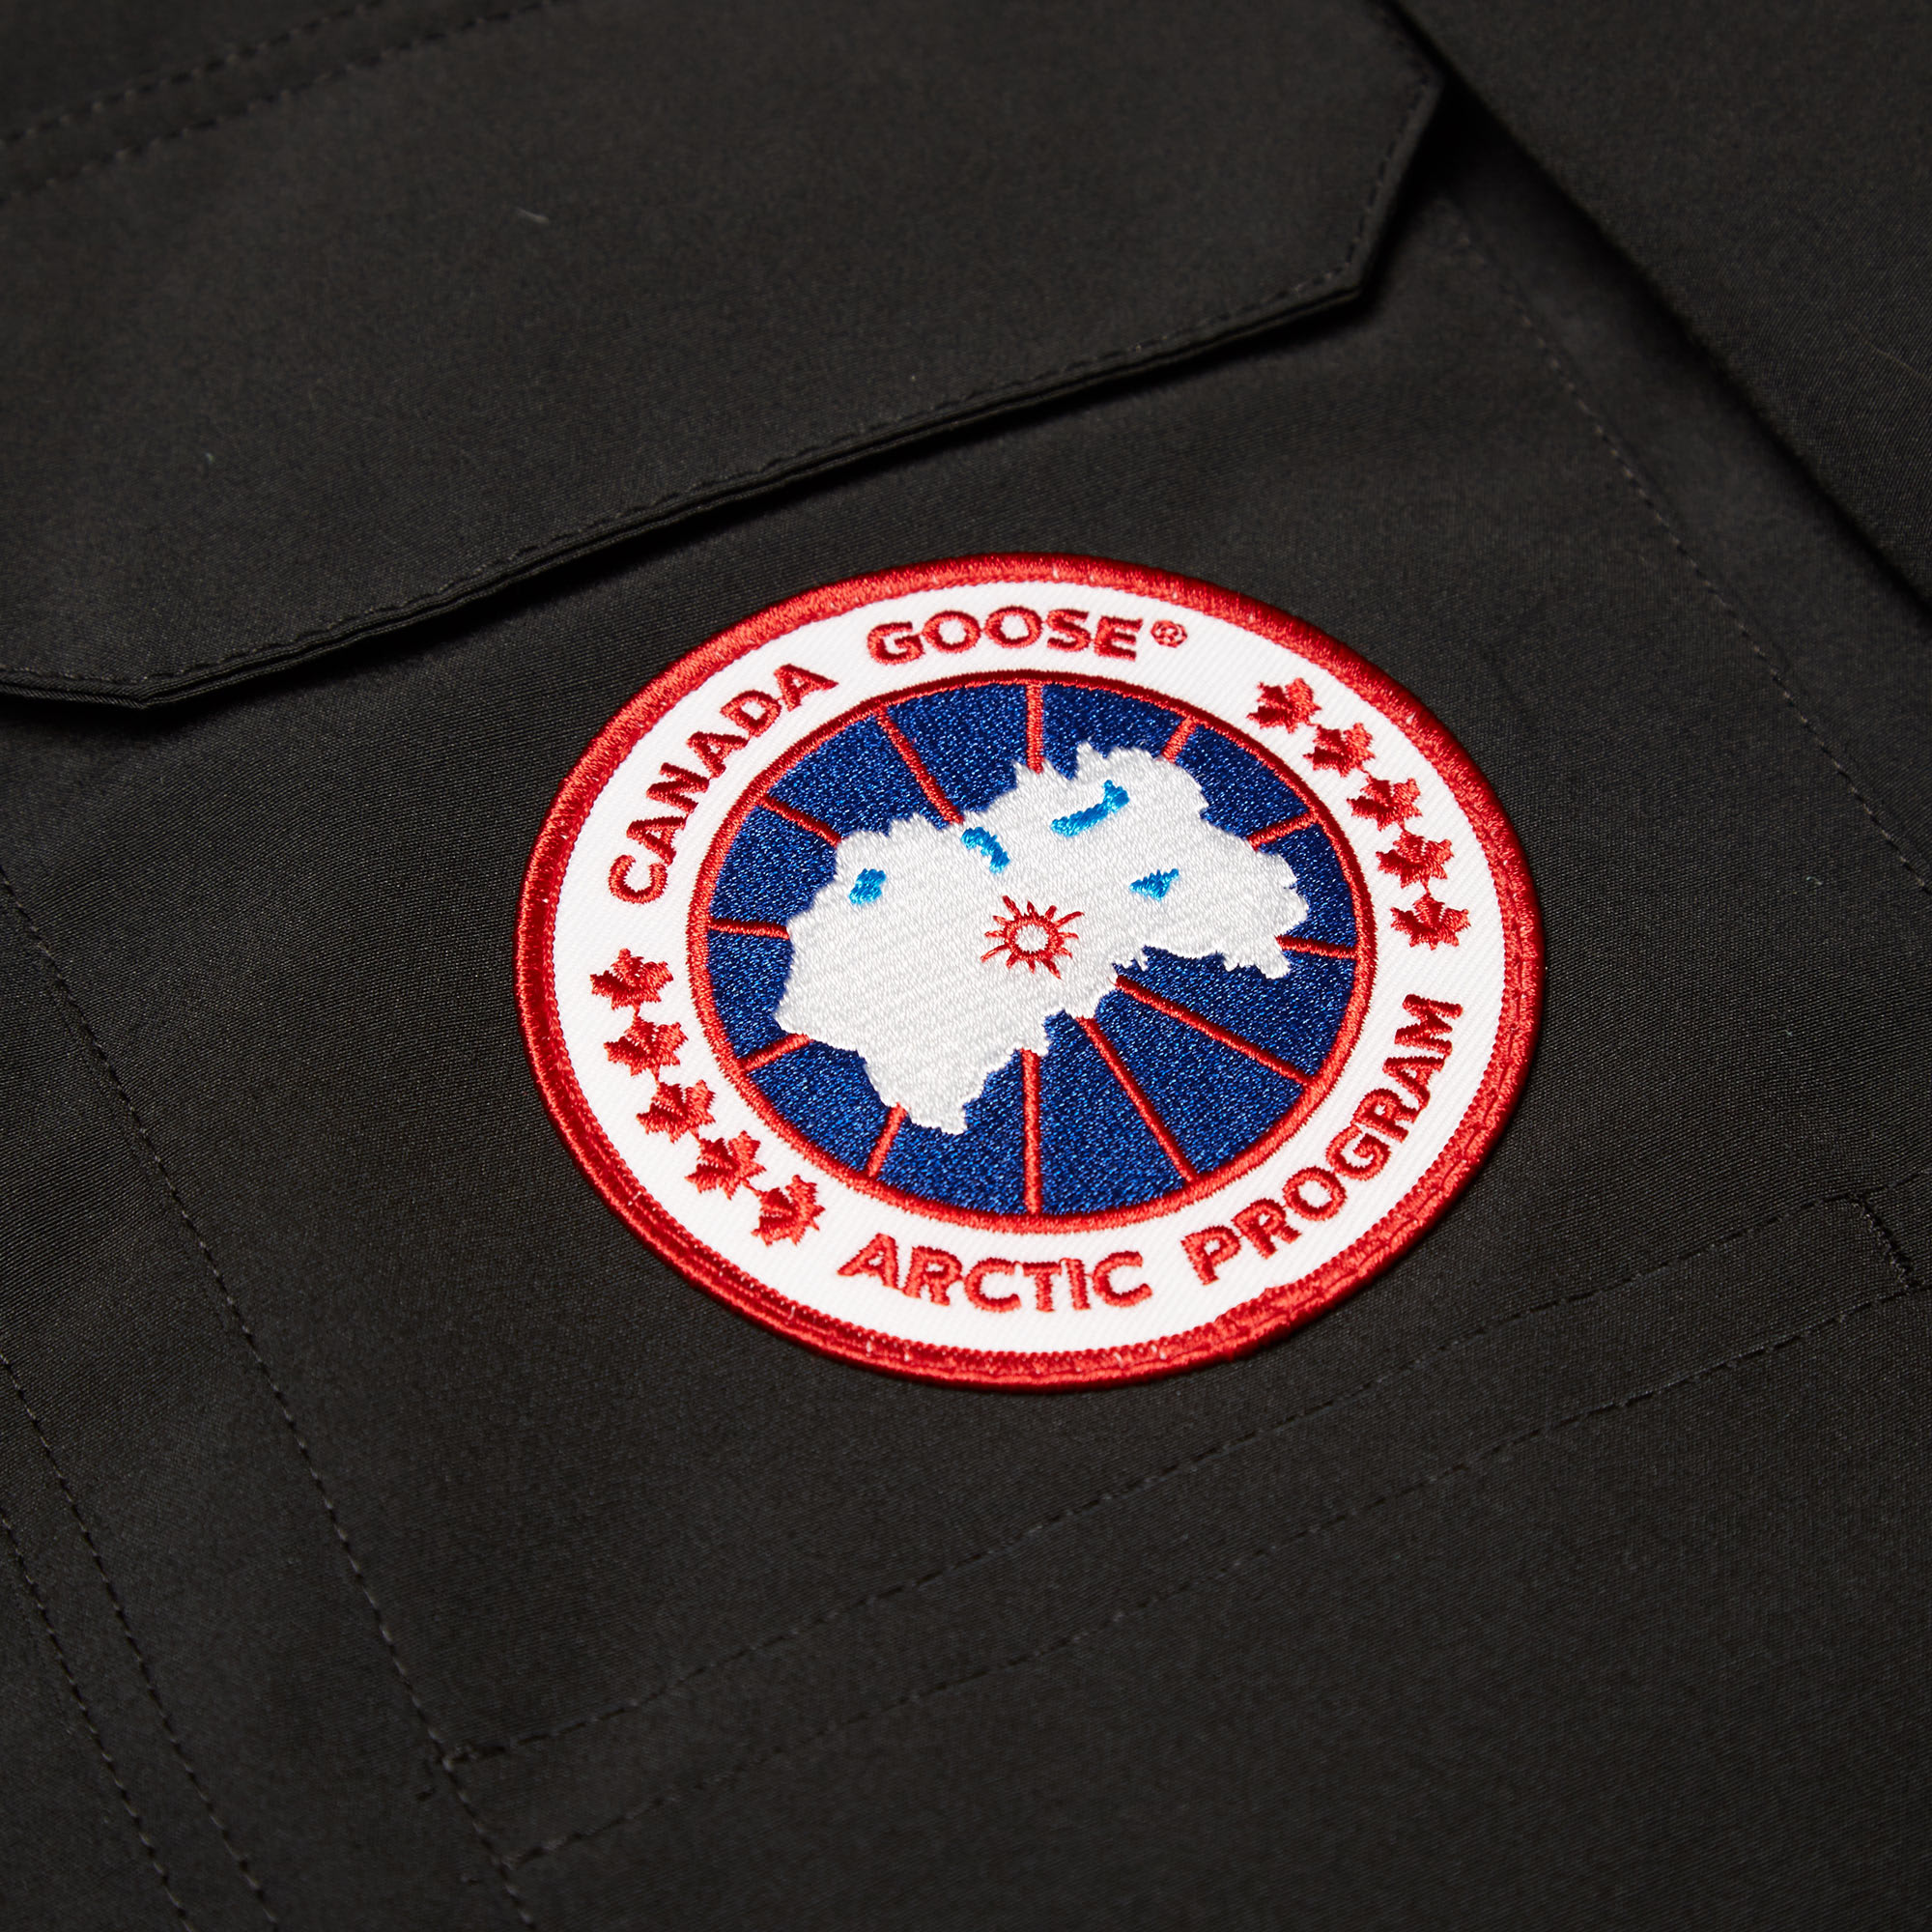 how to tell if canada goose jackets are fake